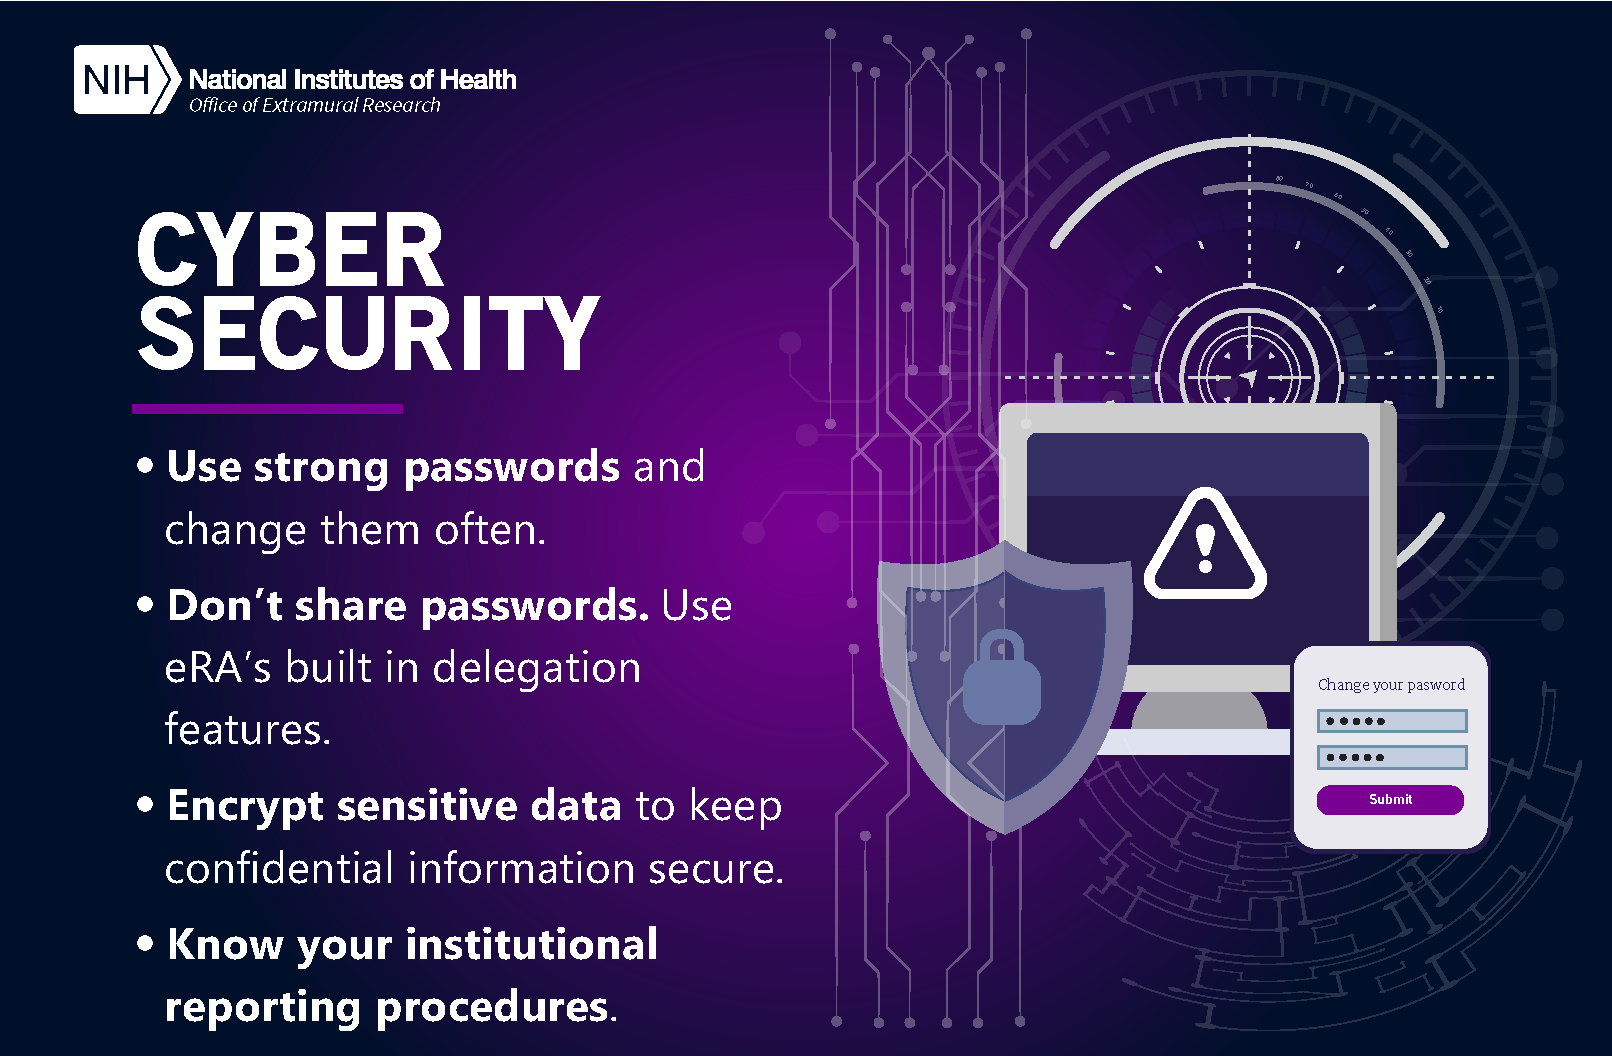 Figure 1 is a graphic displaying some cybersecurity best practices. The tips include using strong passwords and changing them often; not sharing passwords, and using eRA's built in delegation features; encrypting sensitive data to keep confidential information secure; and knowing your institutional reporting procedures.